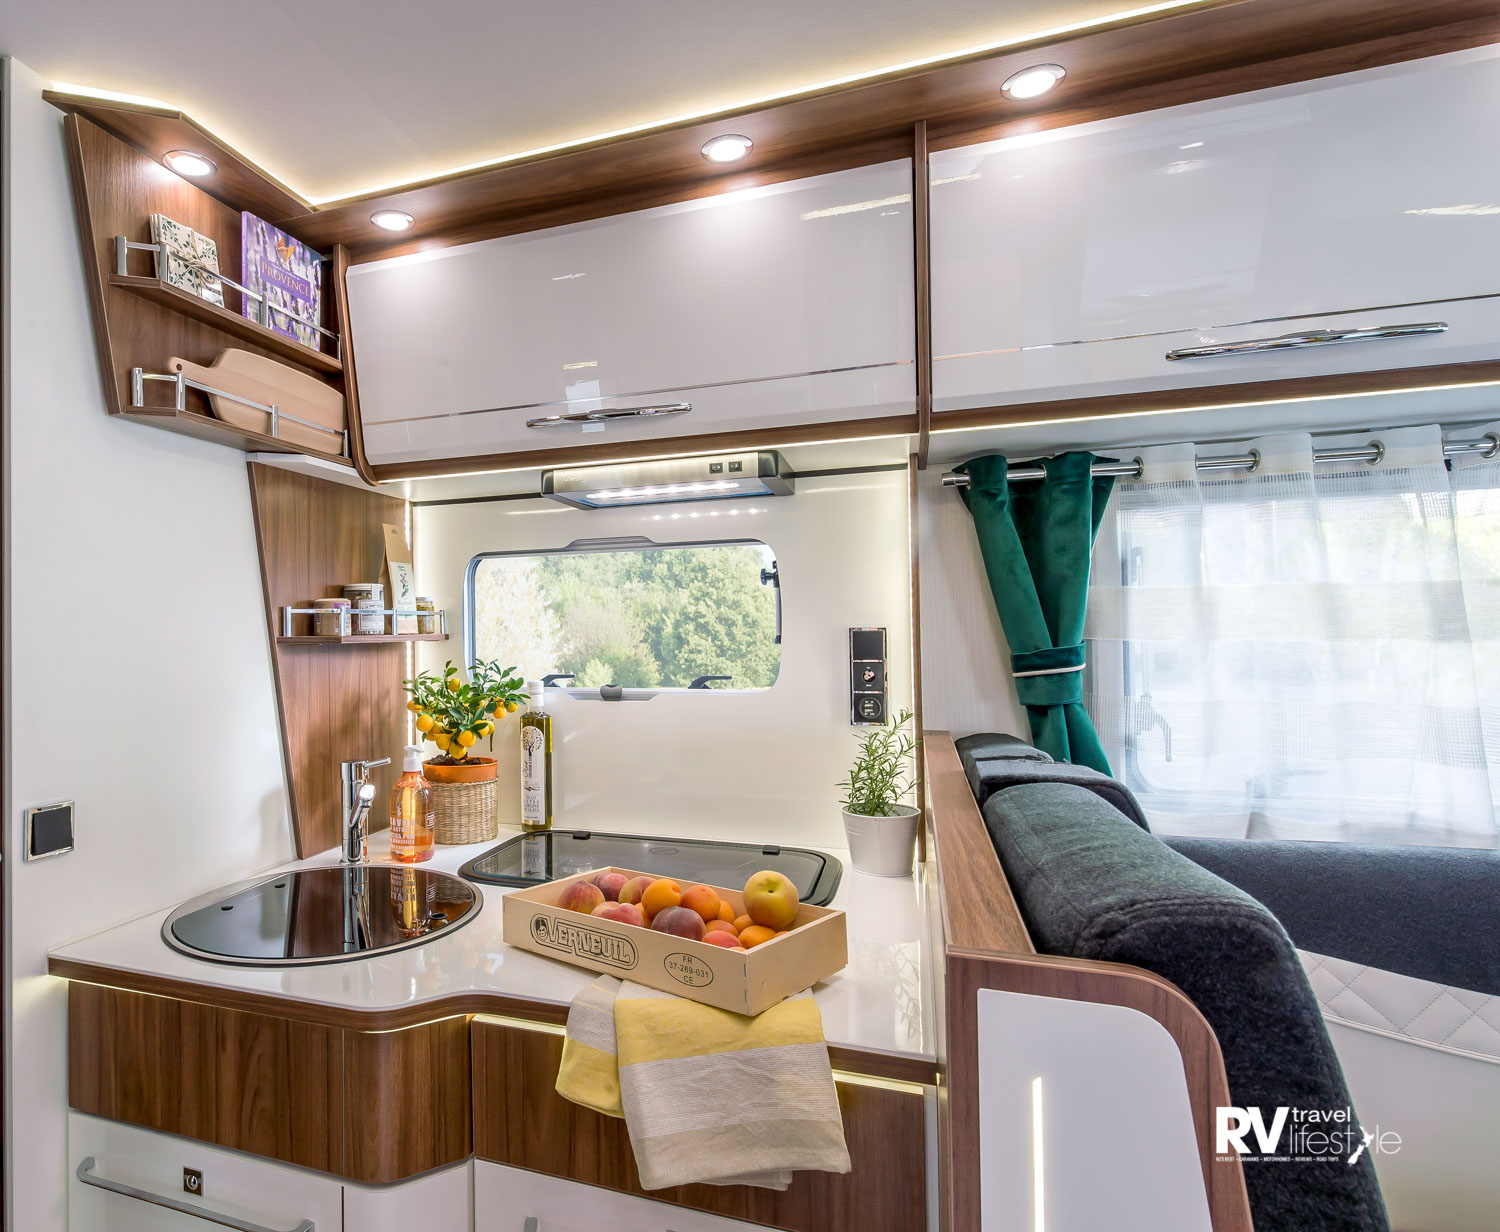 The kitchen has a deep bench, a window with back splash, opening window with screens and blinds, rangehood overhead